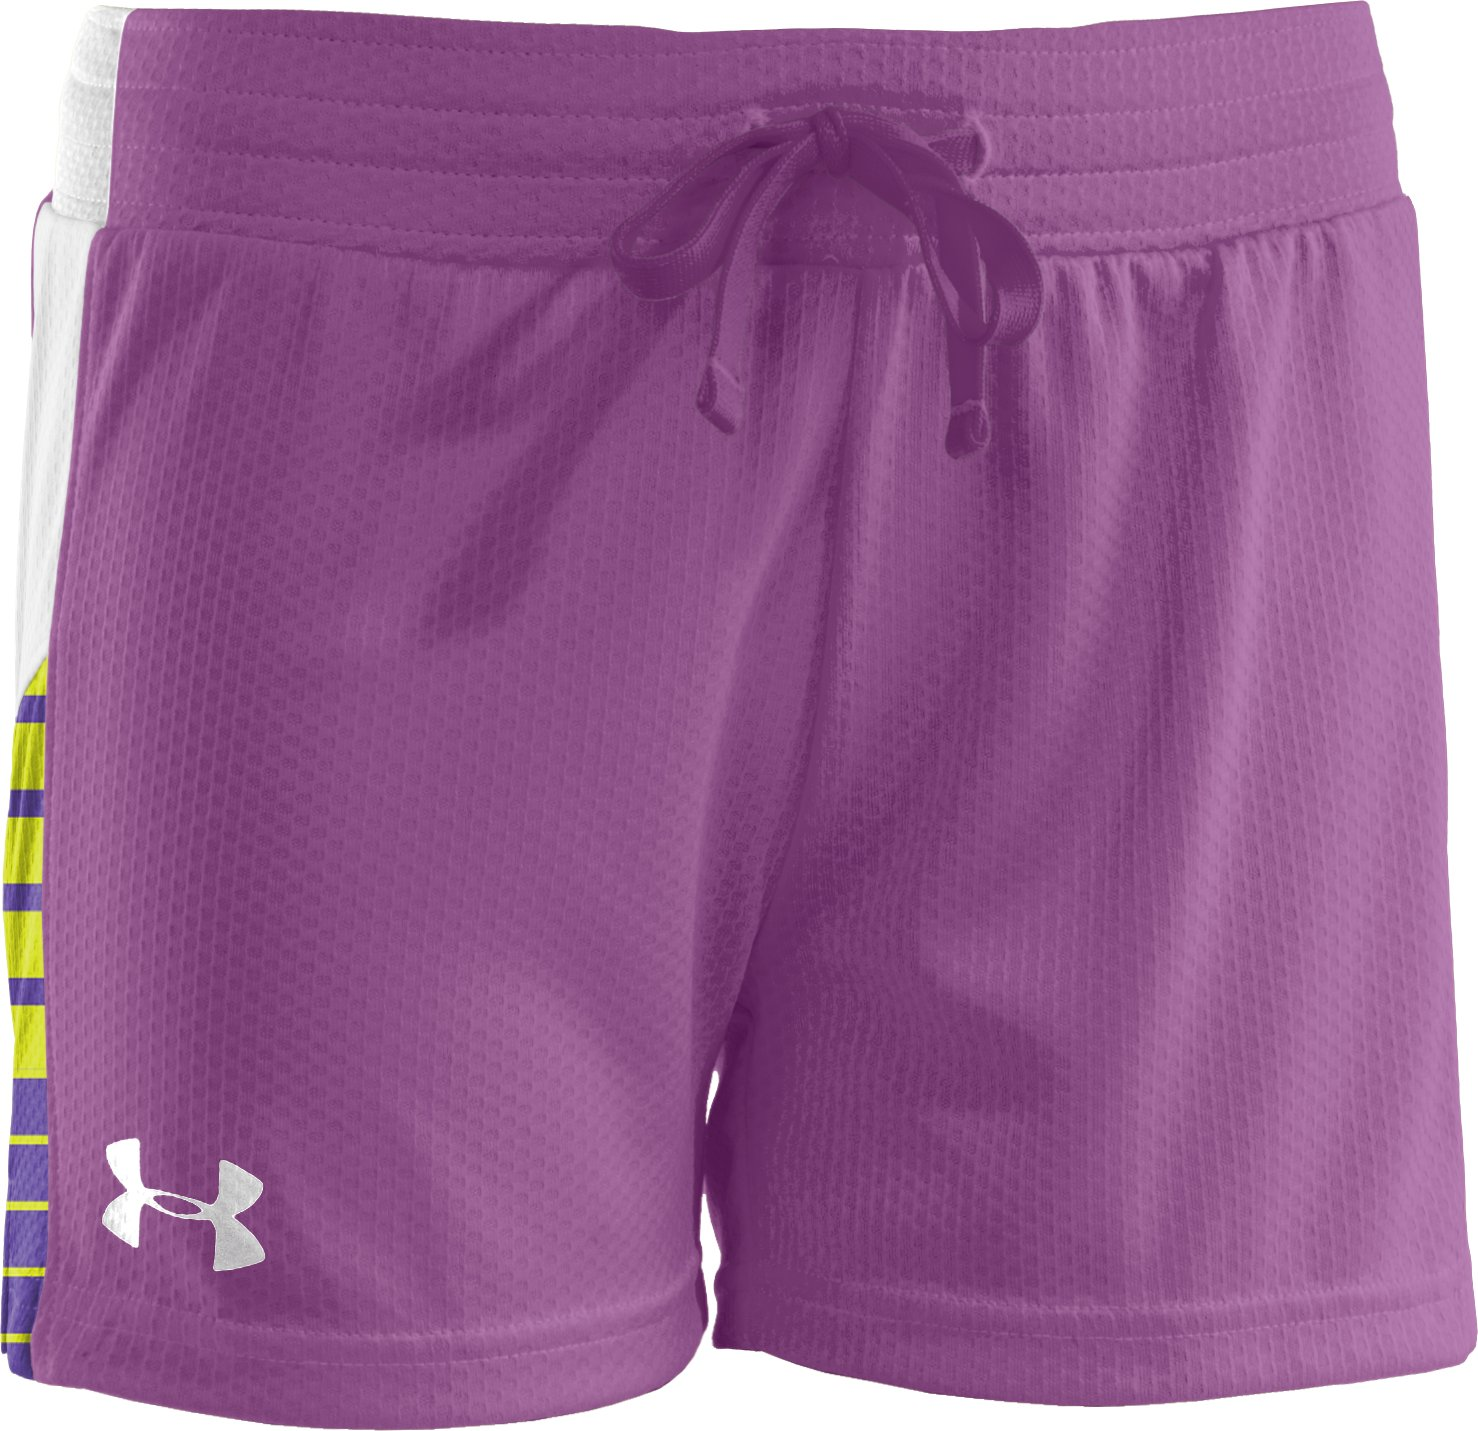 "Girls' UA Intensity 3"" Shorts, LAVISH"